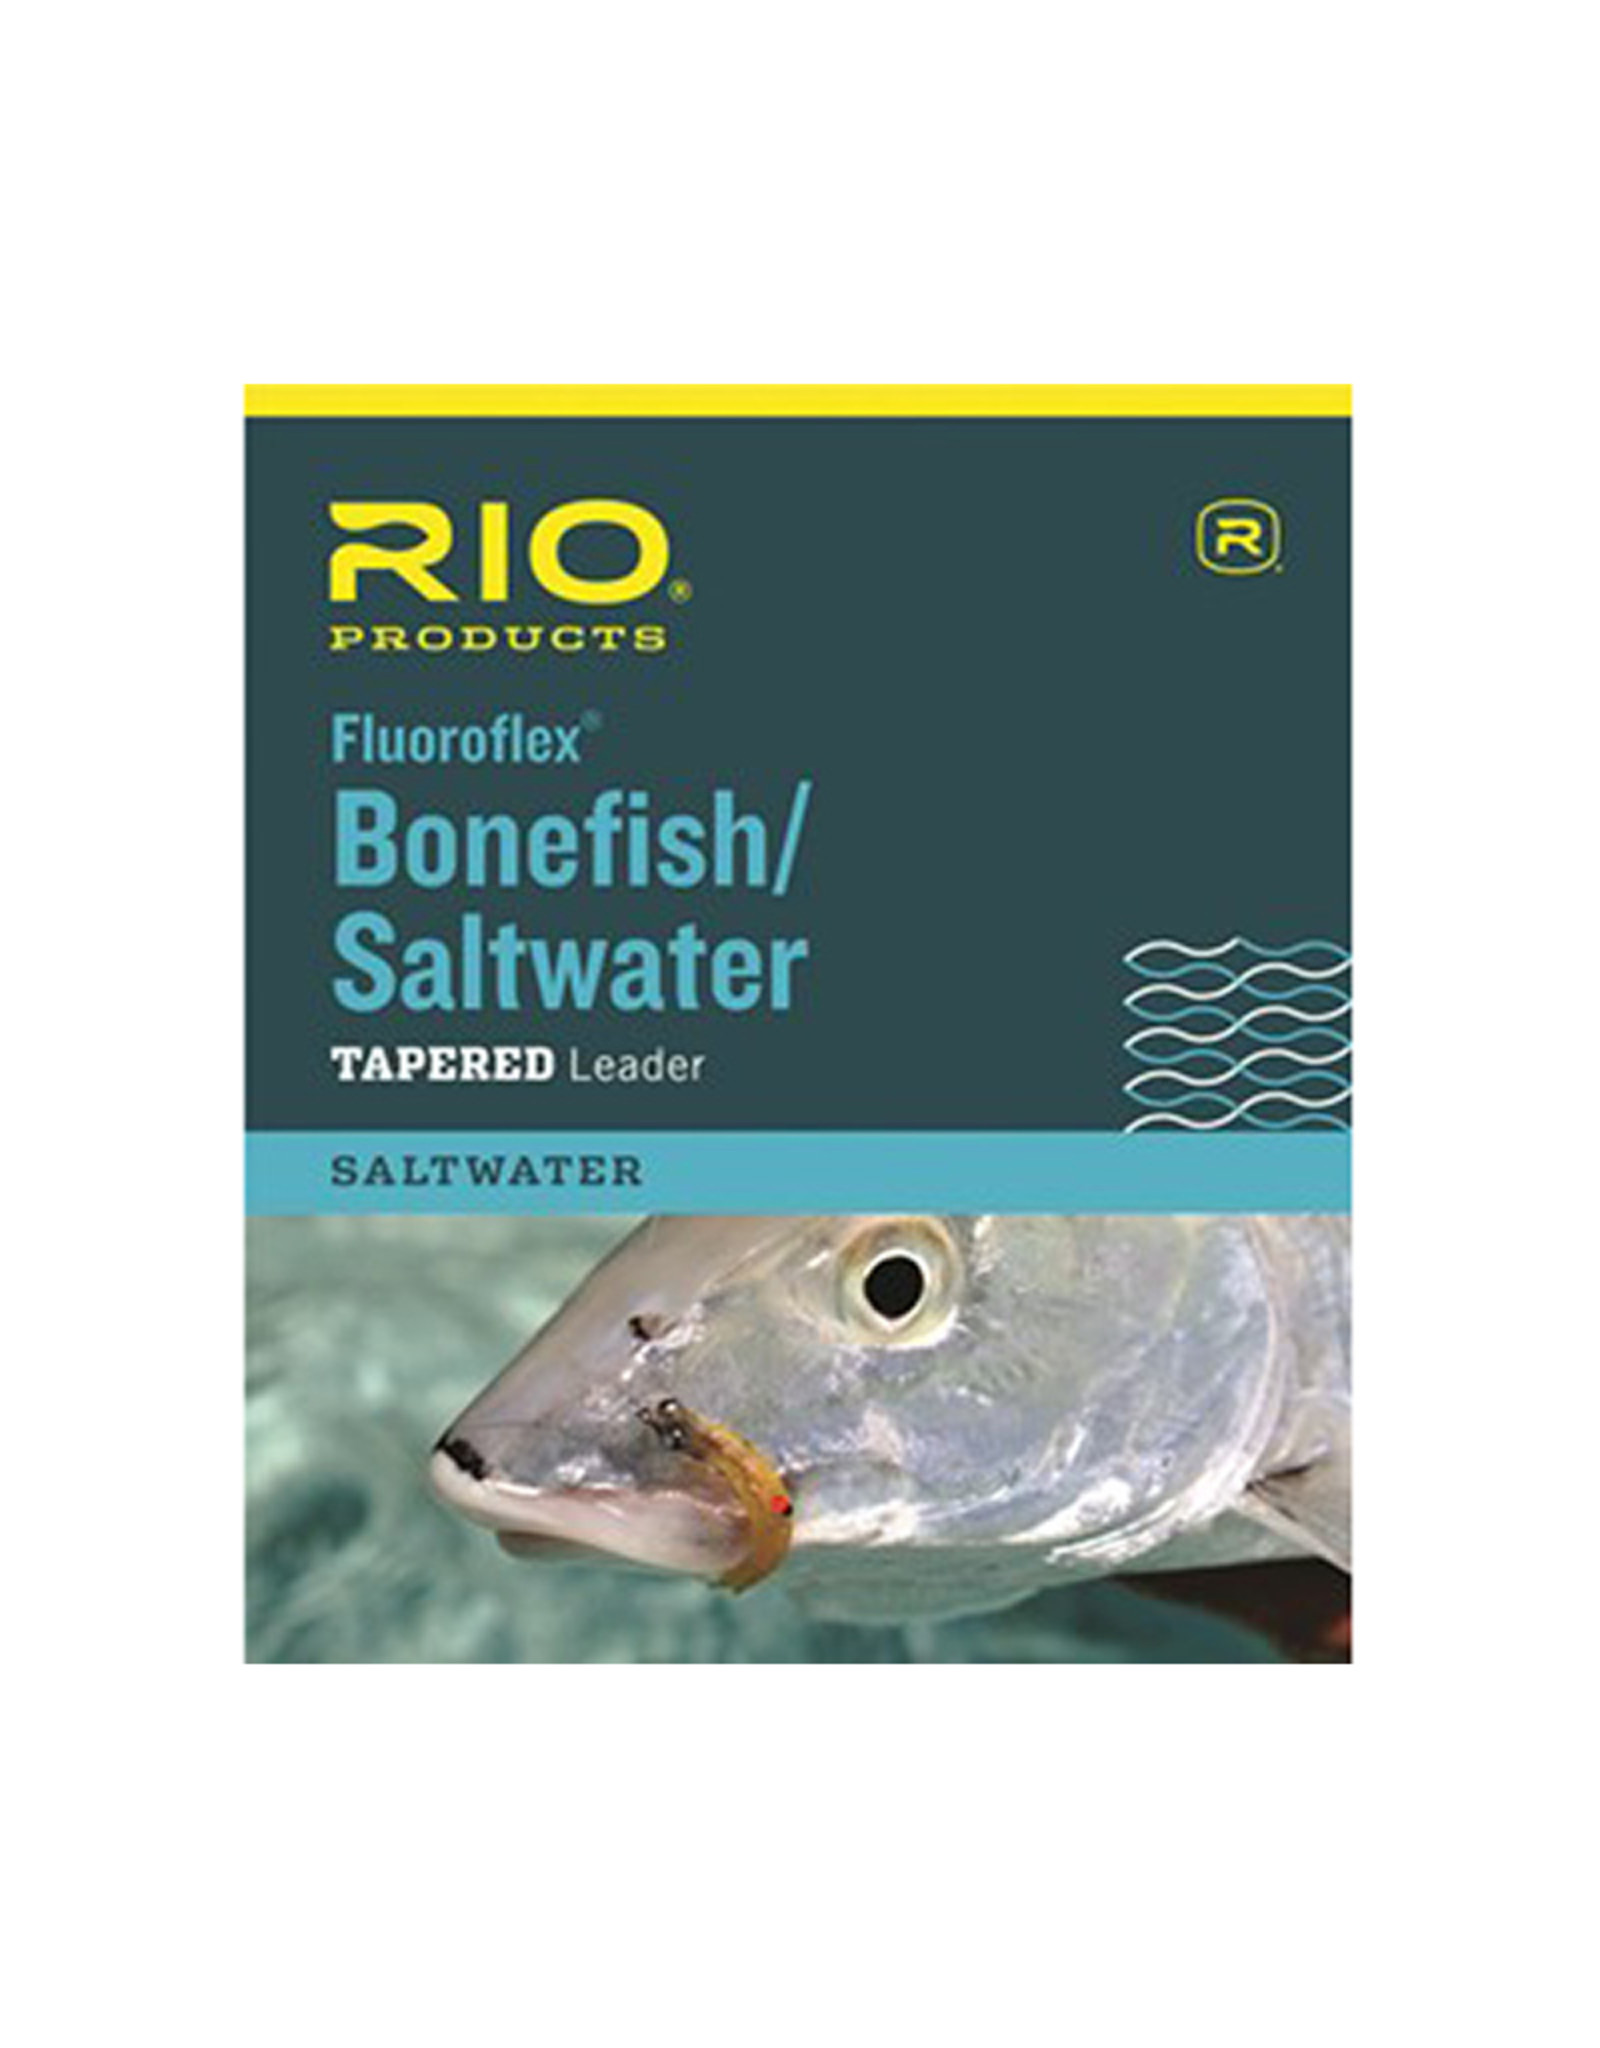 RIO Products Fluoroflex Bonefish/Saltwater 9ft Tapered Leader